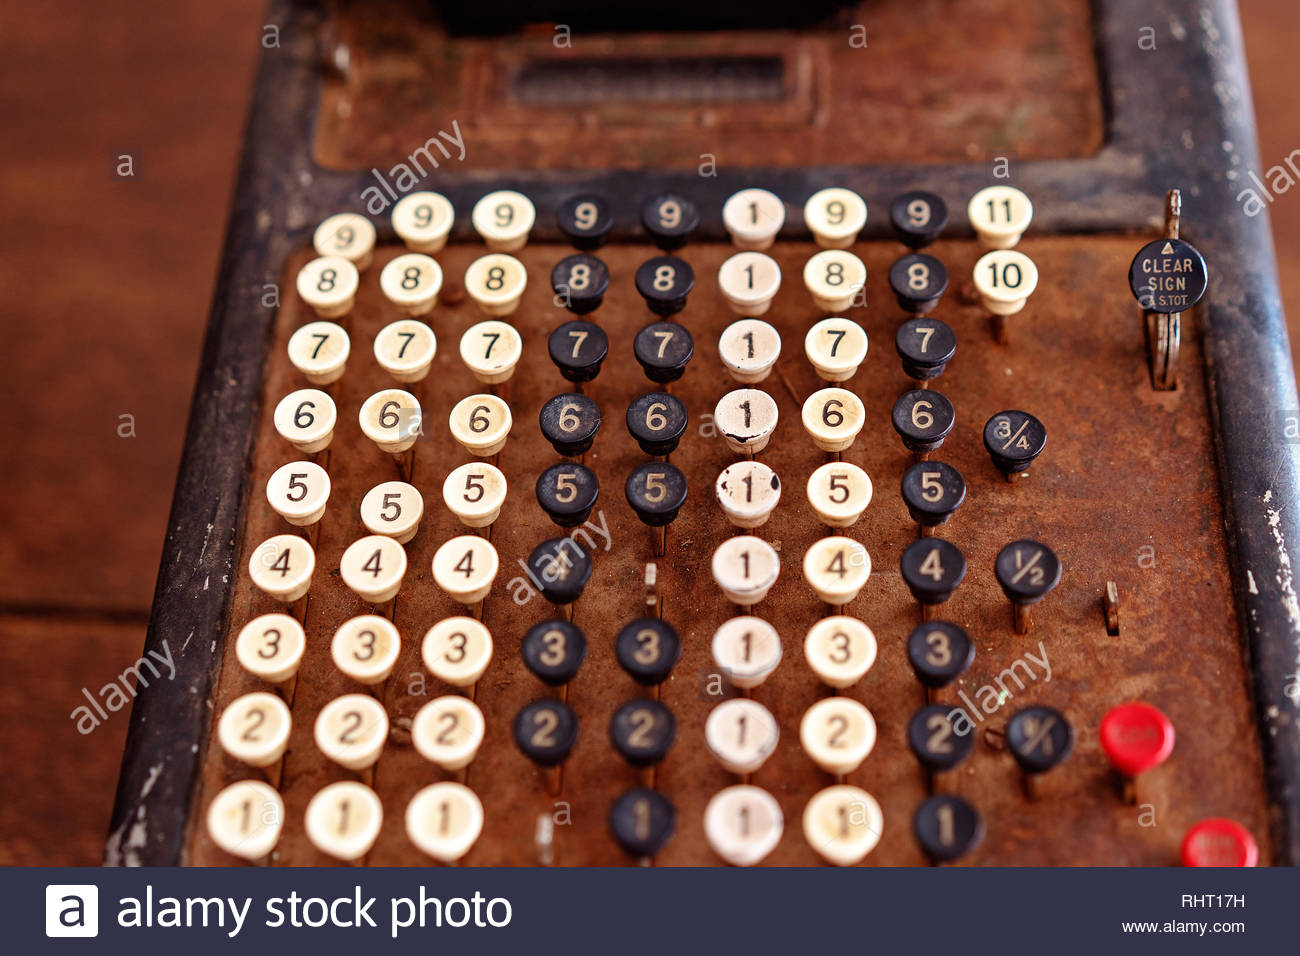 Vintage calculator used for adding numbers in the old days of yesteryear - Stock Image